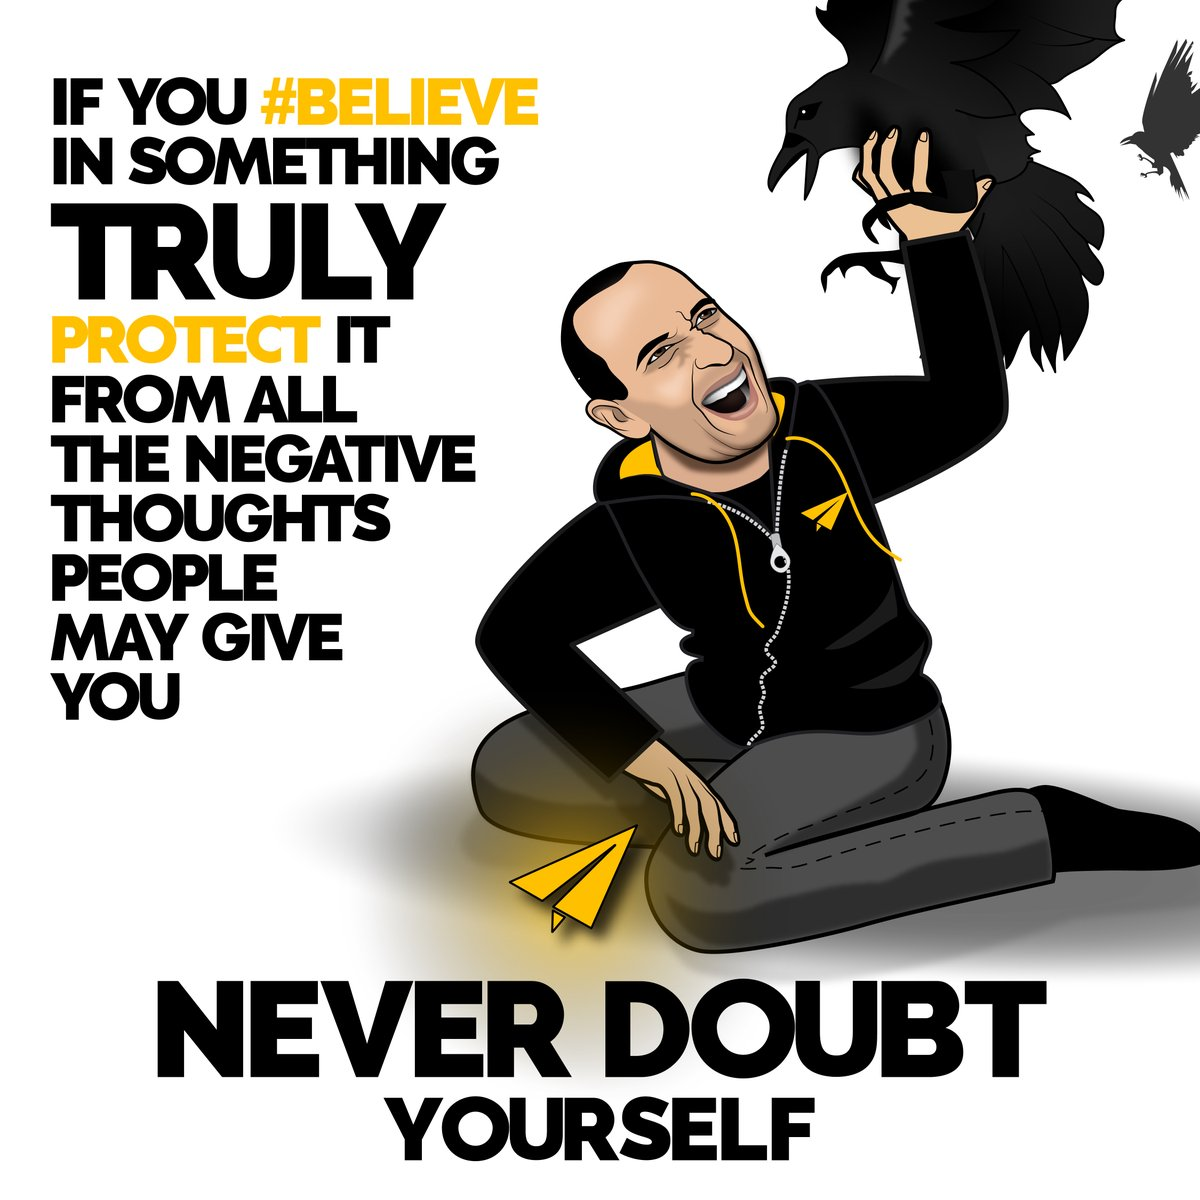 Leave a 💛💛 below if this message spoke to you 👇  If you #Believe in something, truly protect it from all the negative thoughts people may give you. Never doubt yourself. ______________________________________ #bestadvice #personaldevelopment #consulting https://t.co/uRQTS199sP